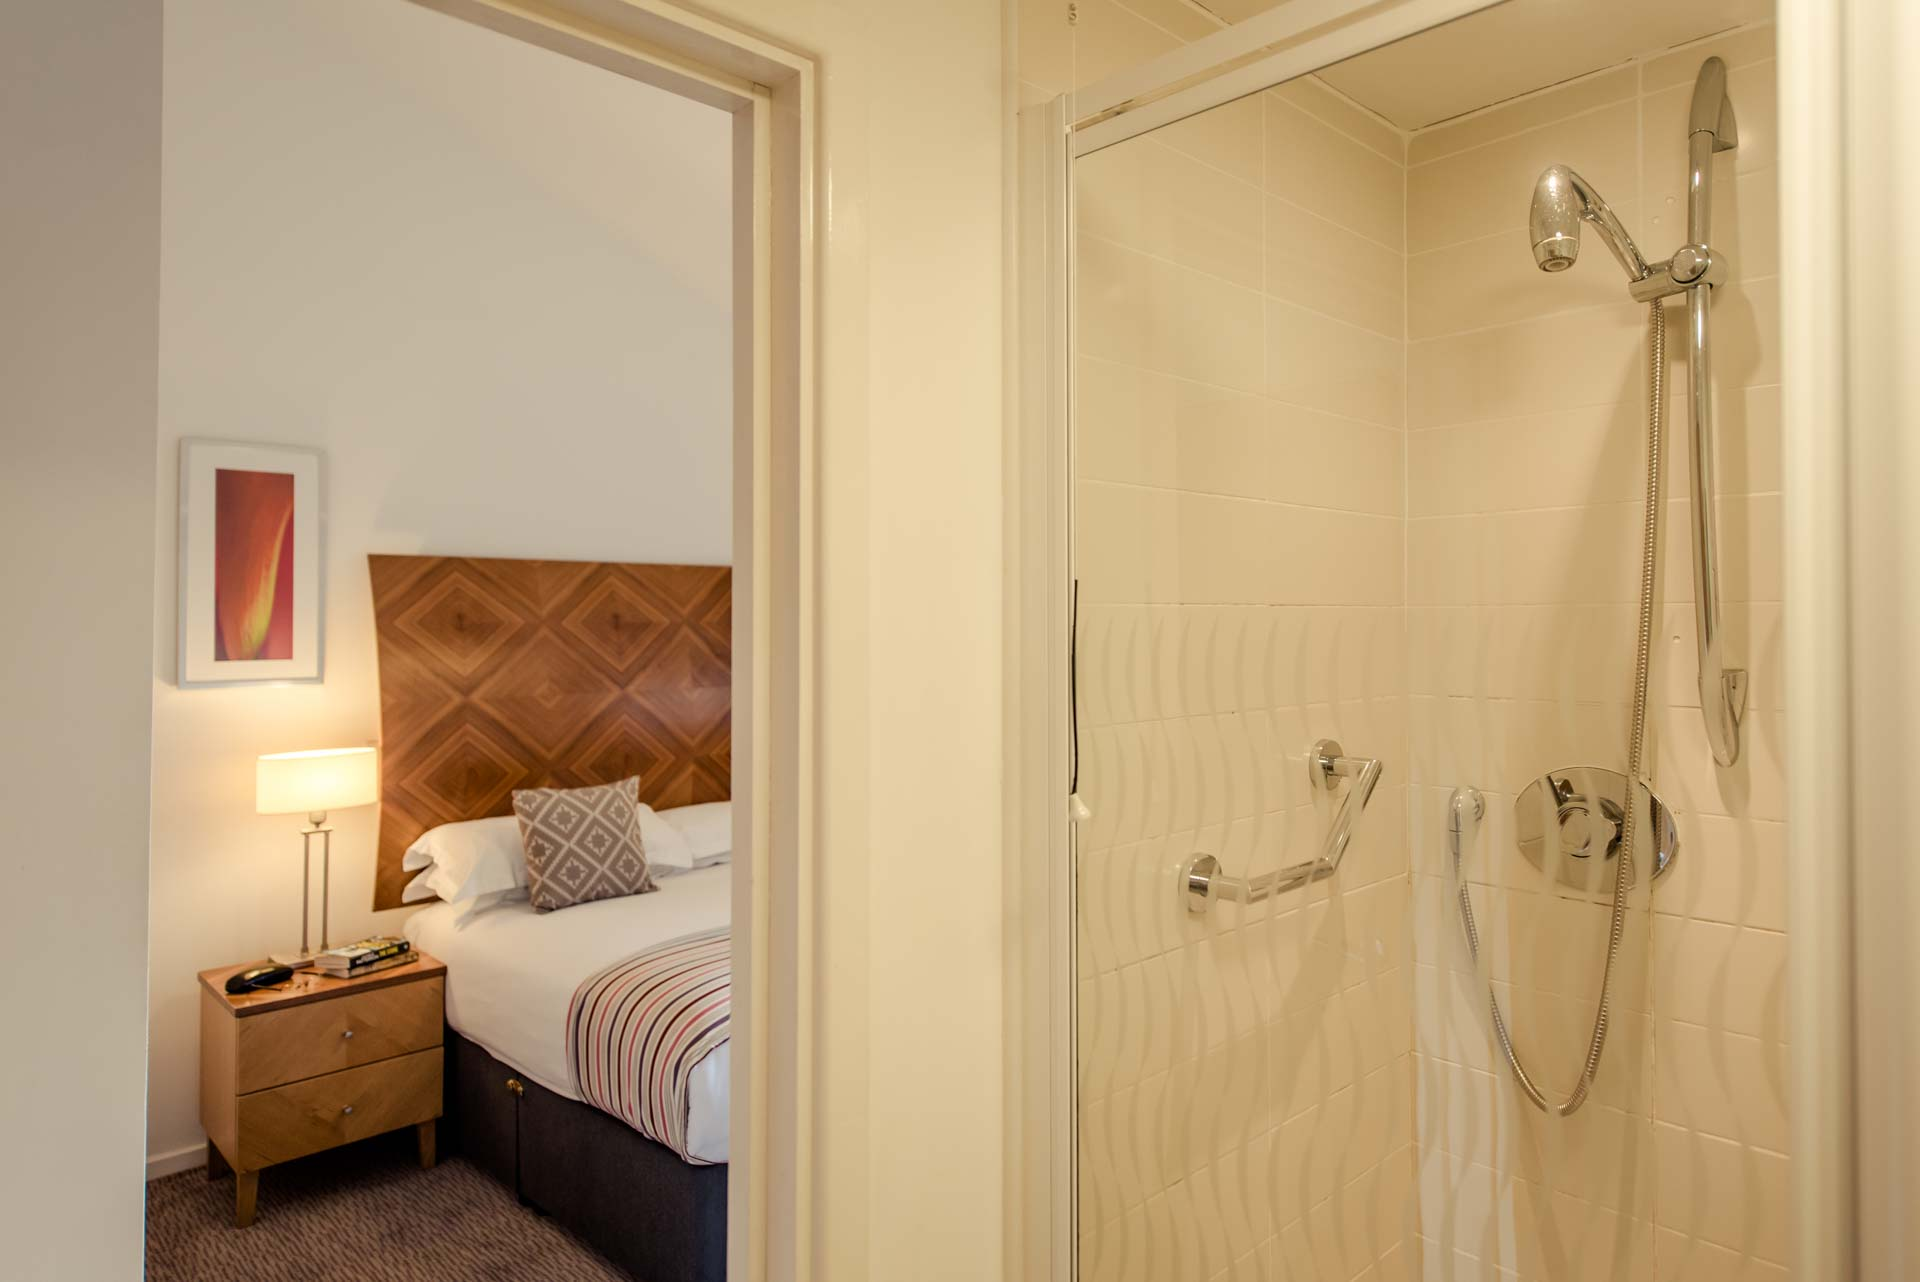 PREMIER SUITES Newcastle double bed view from ensuite bathroom